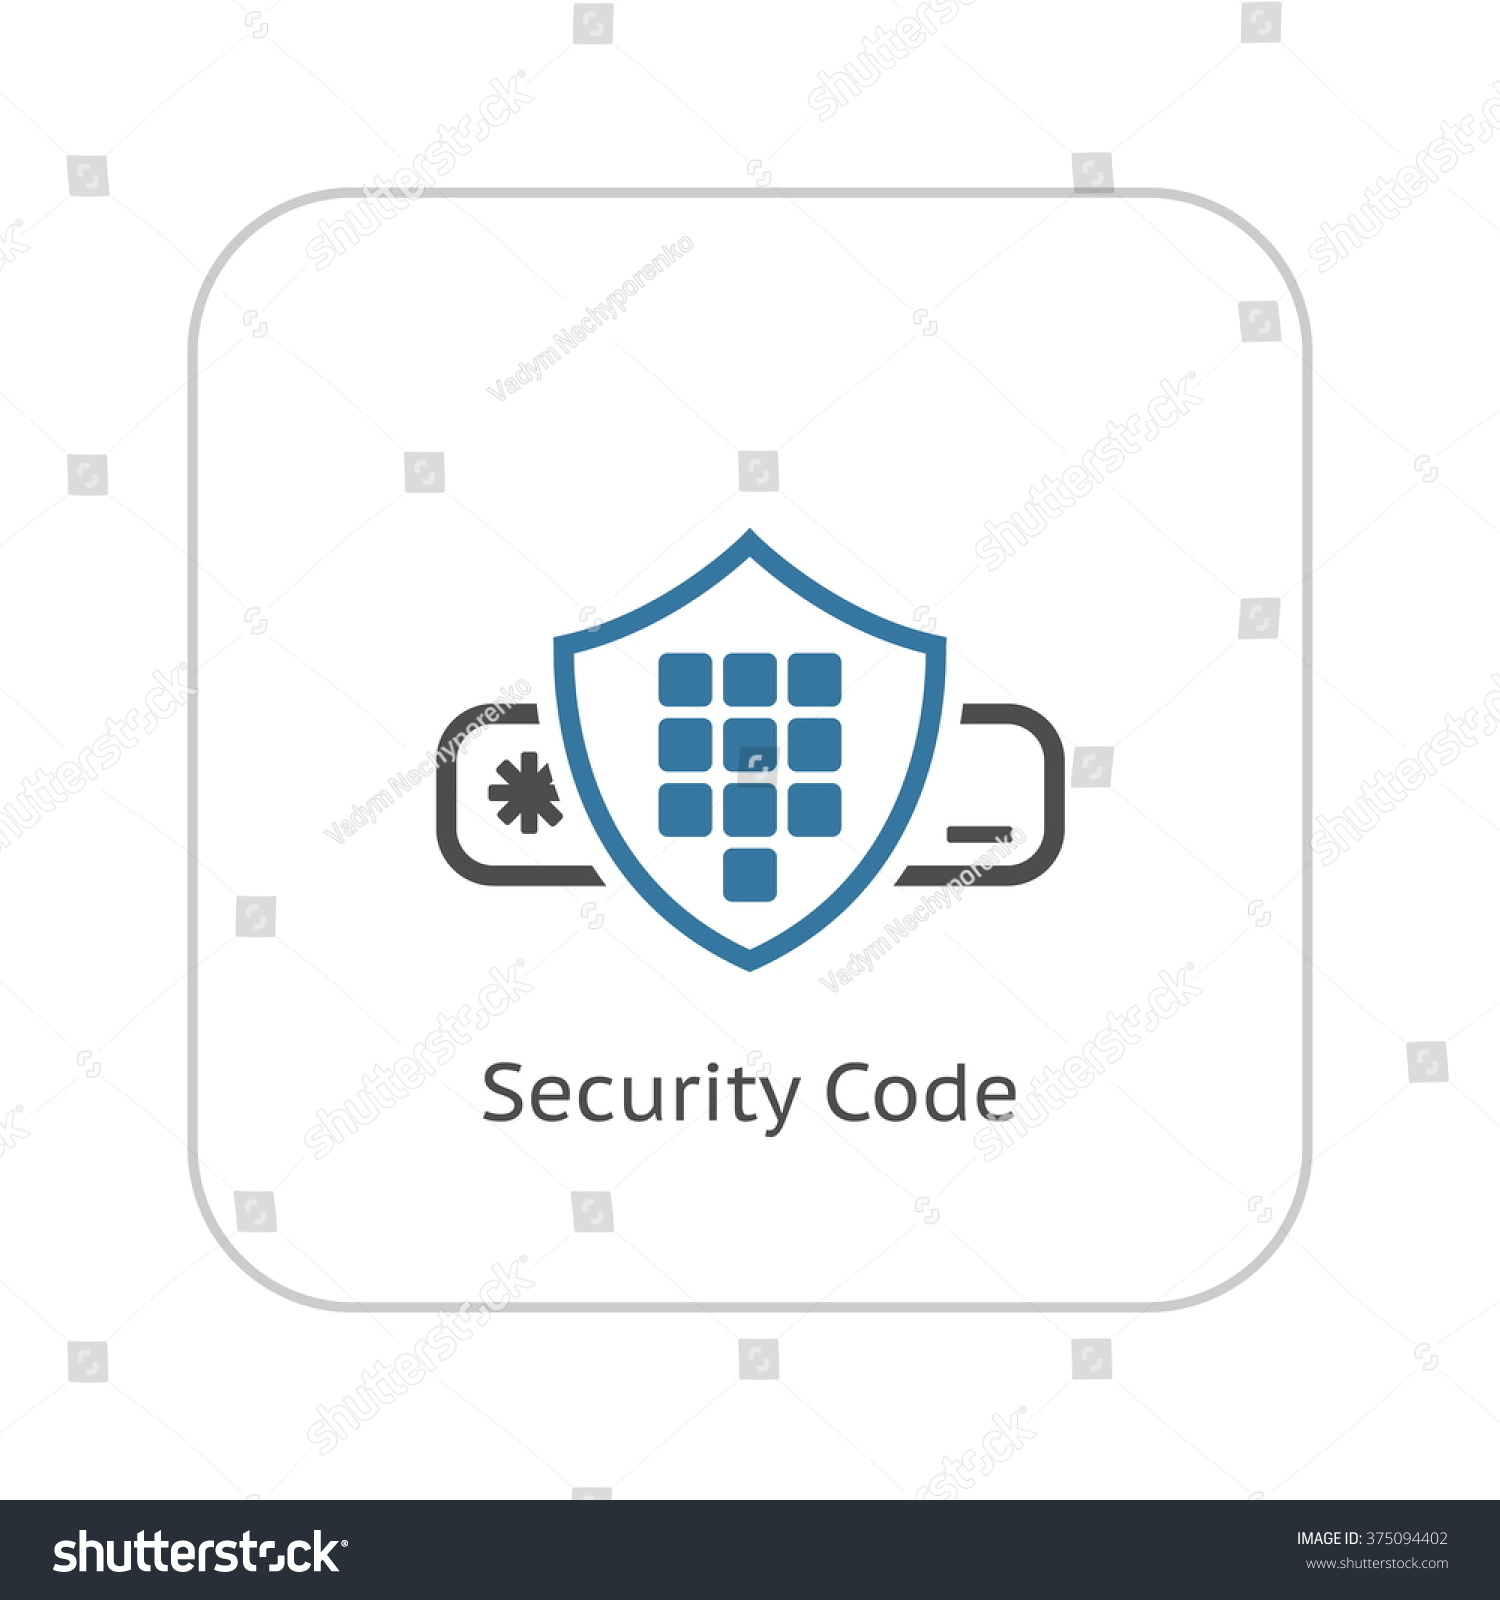 Security Code Icon Flat Design Stock Vector (Royalty Free